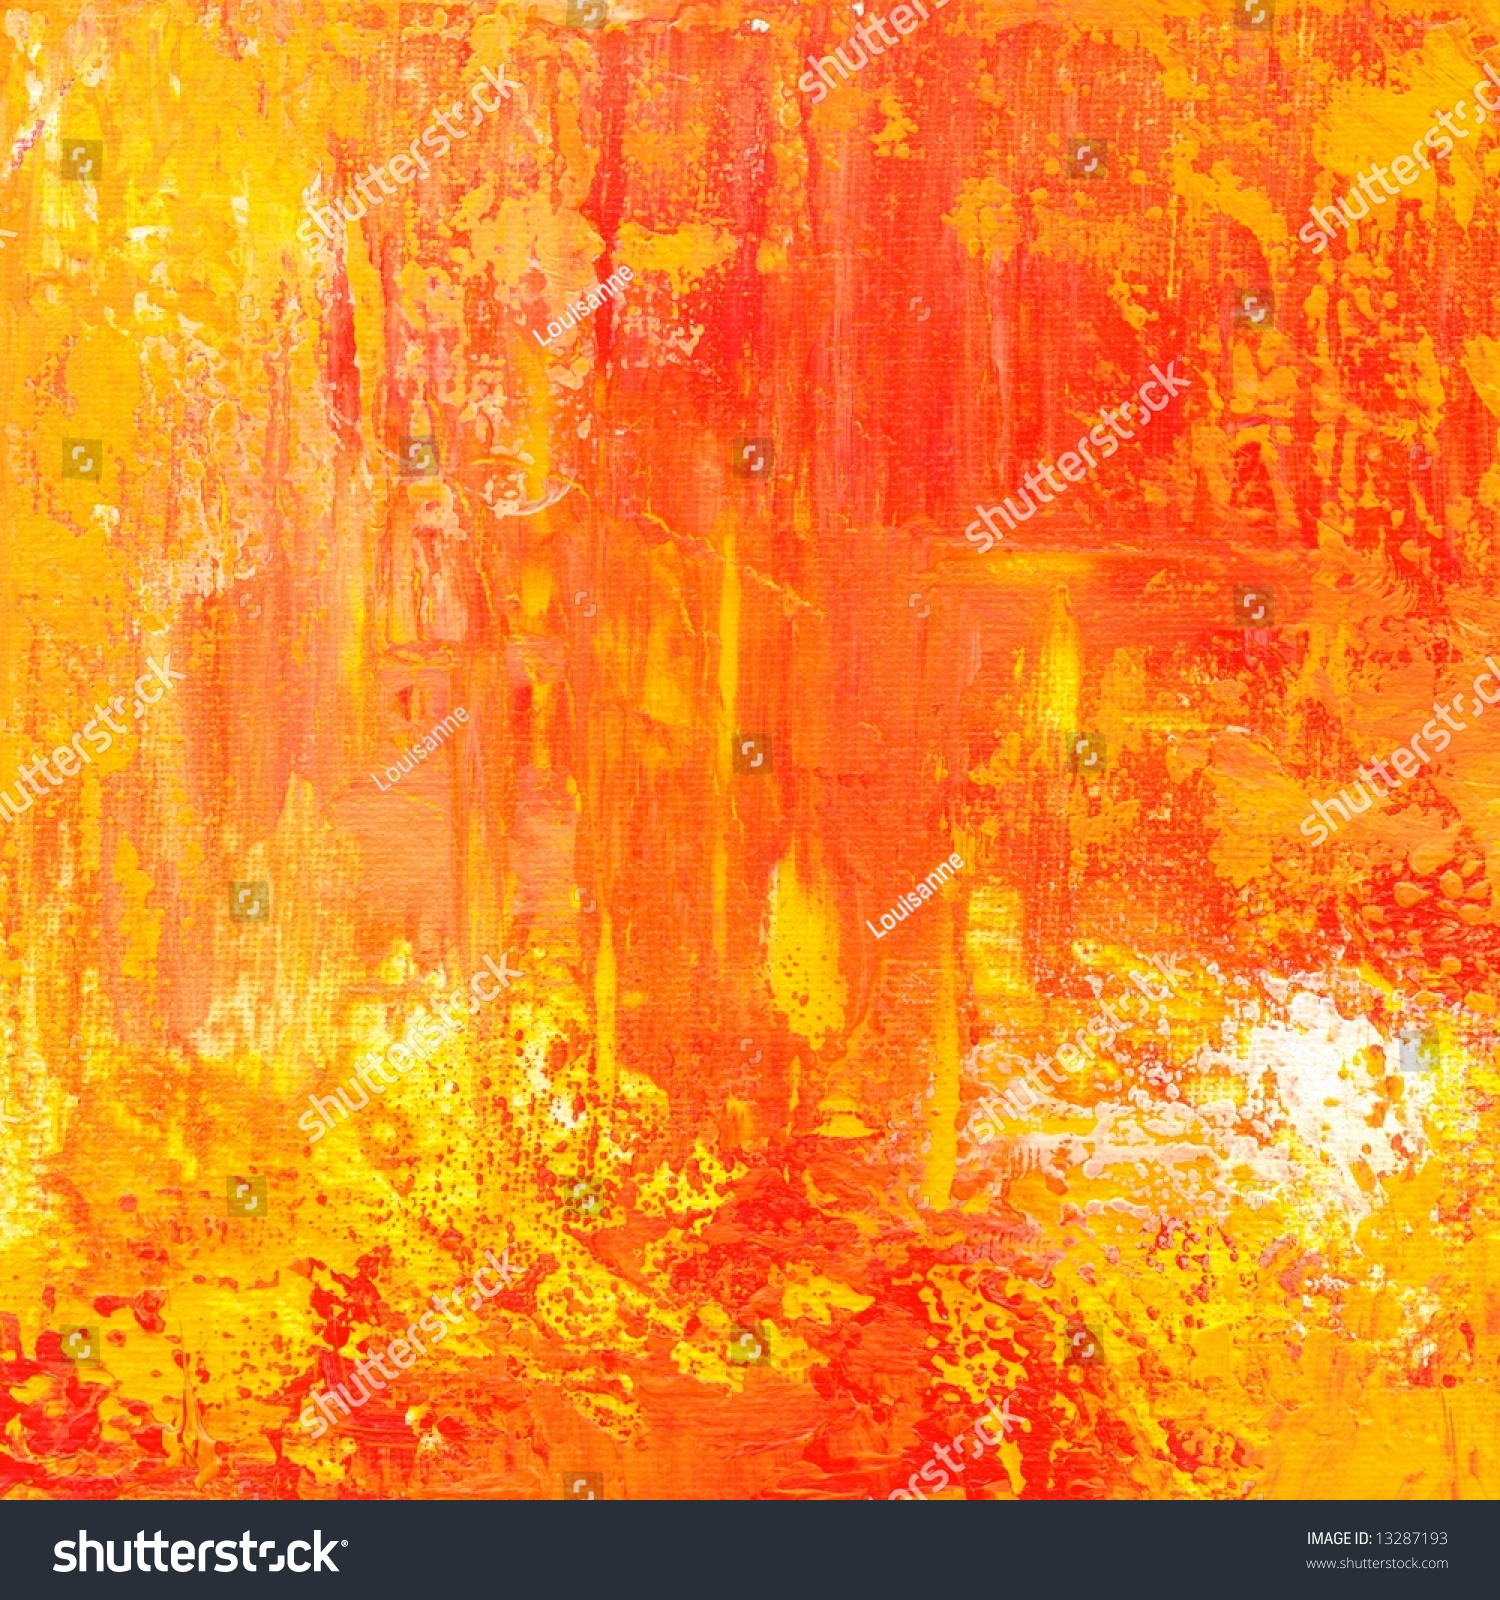 Abstract Painted Grunge Background Texture Different Stock